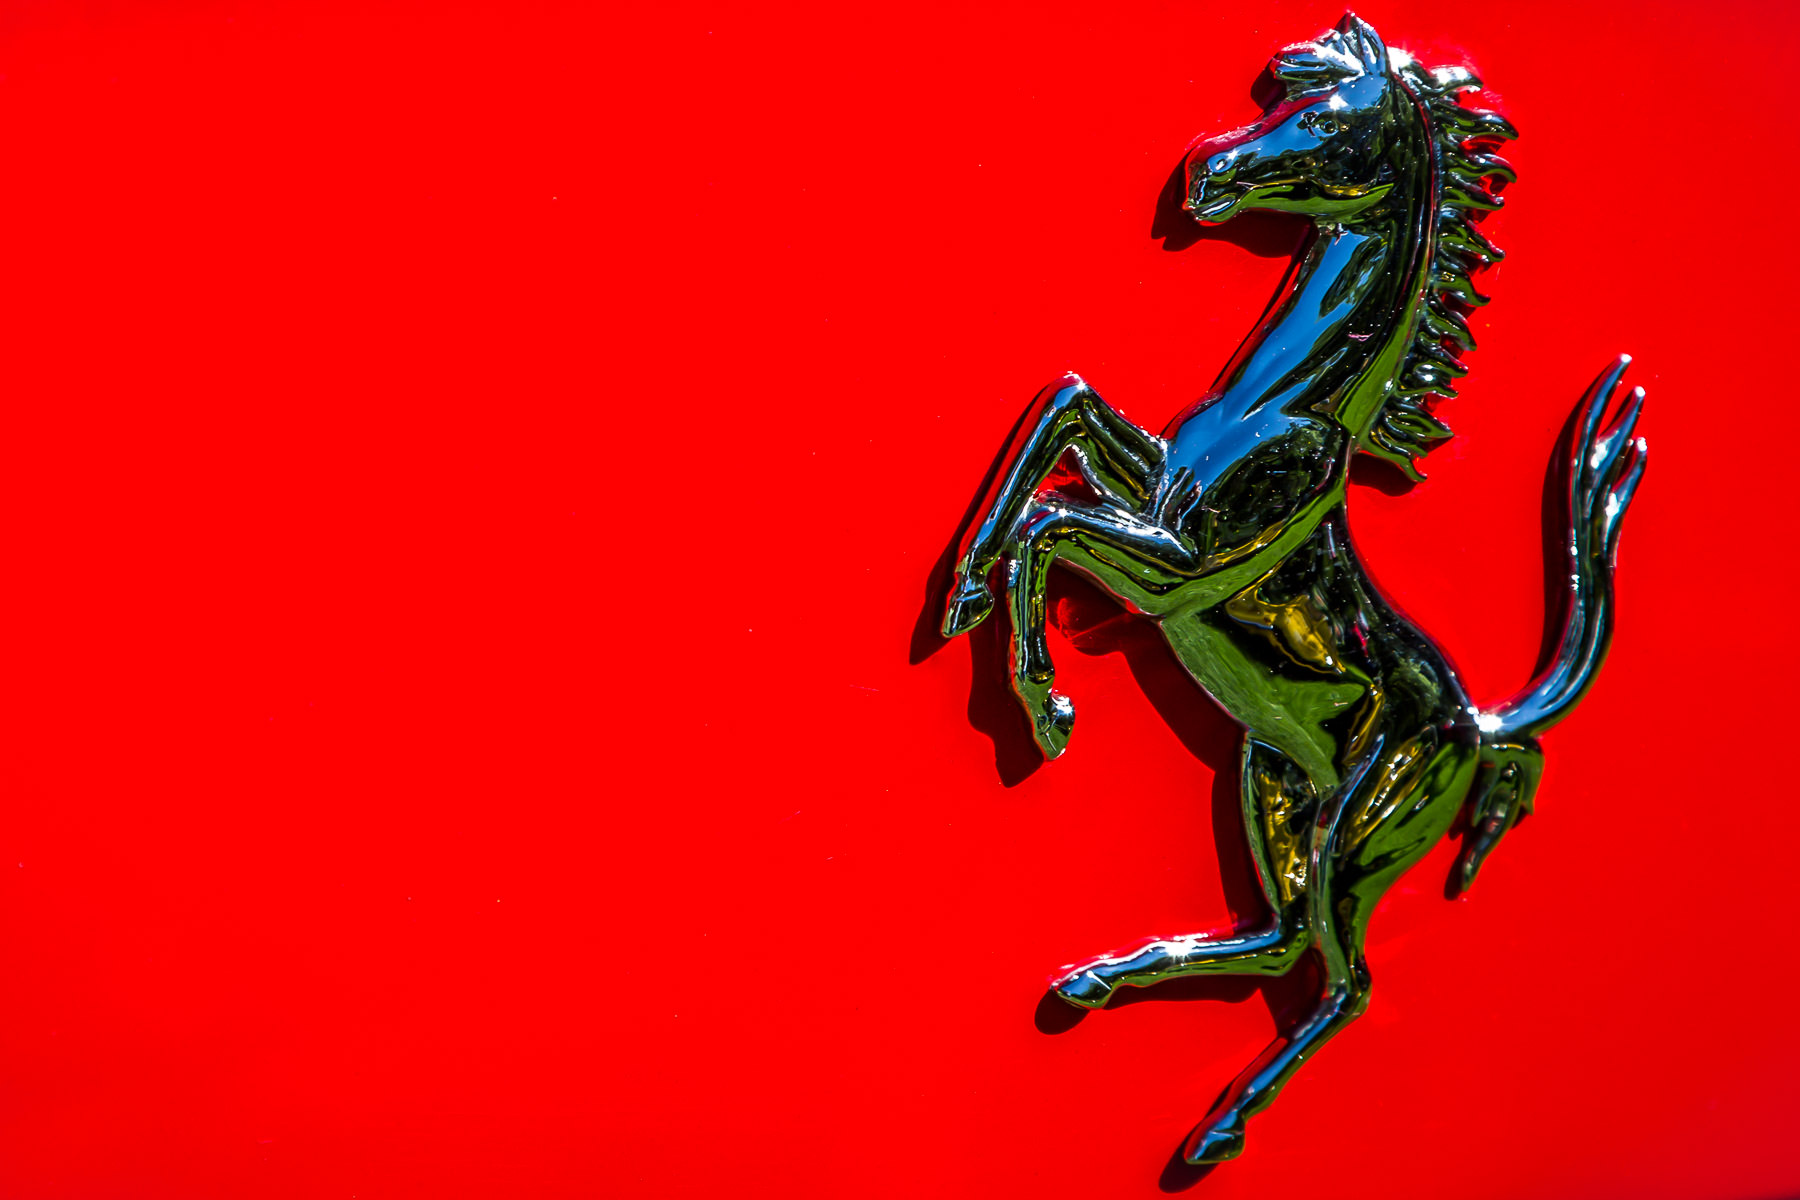 Ferrari's iconic Prancing Stallion, or Cavallino Rampante, as seen on a Ferrari F12 Berlinetta at Dallas' Cooper Aerobics Center's Autos in the Park event.